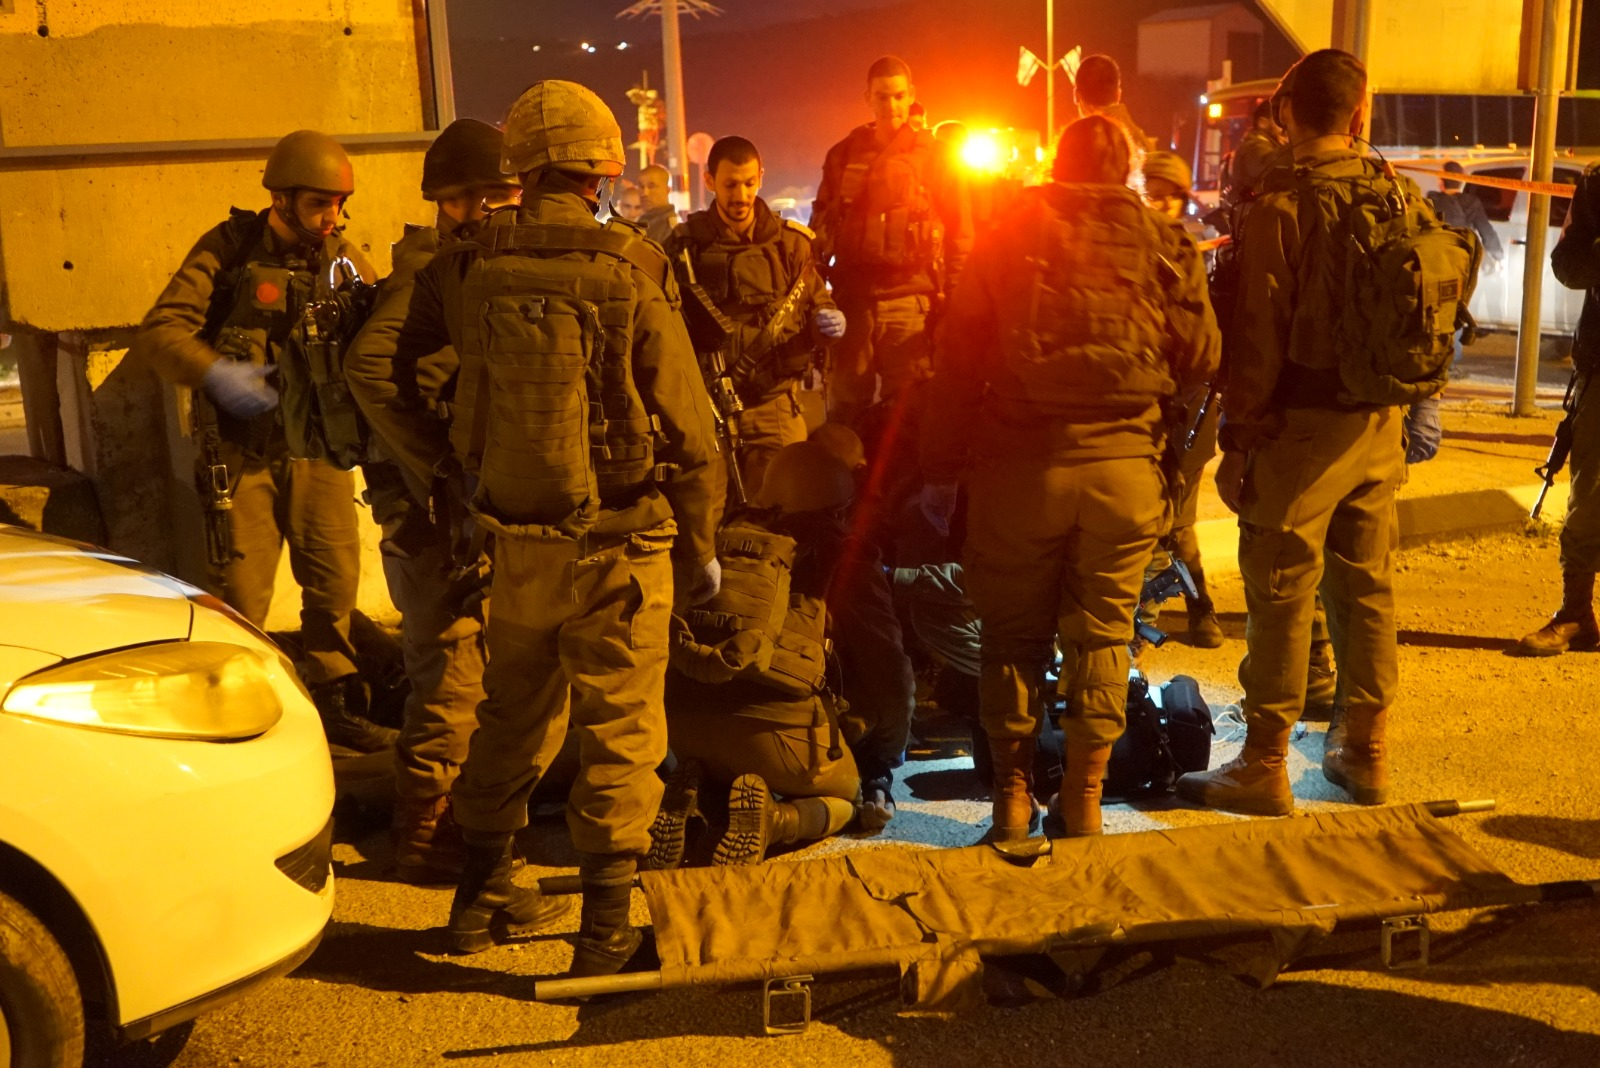 Soldiers at the scene of an attempted stabbing attack near the West Bank  city of Nablus a5d86cfa016cc